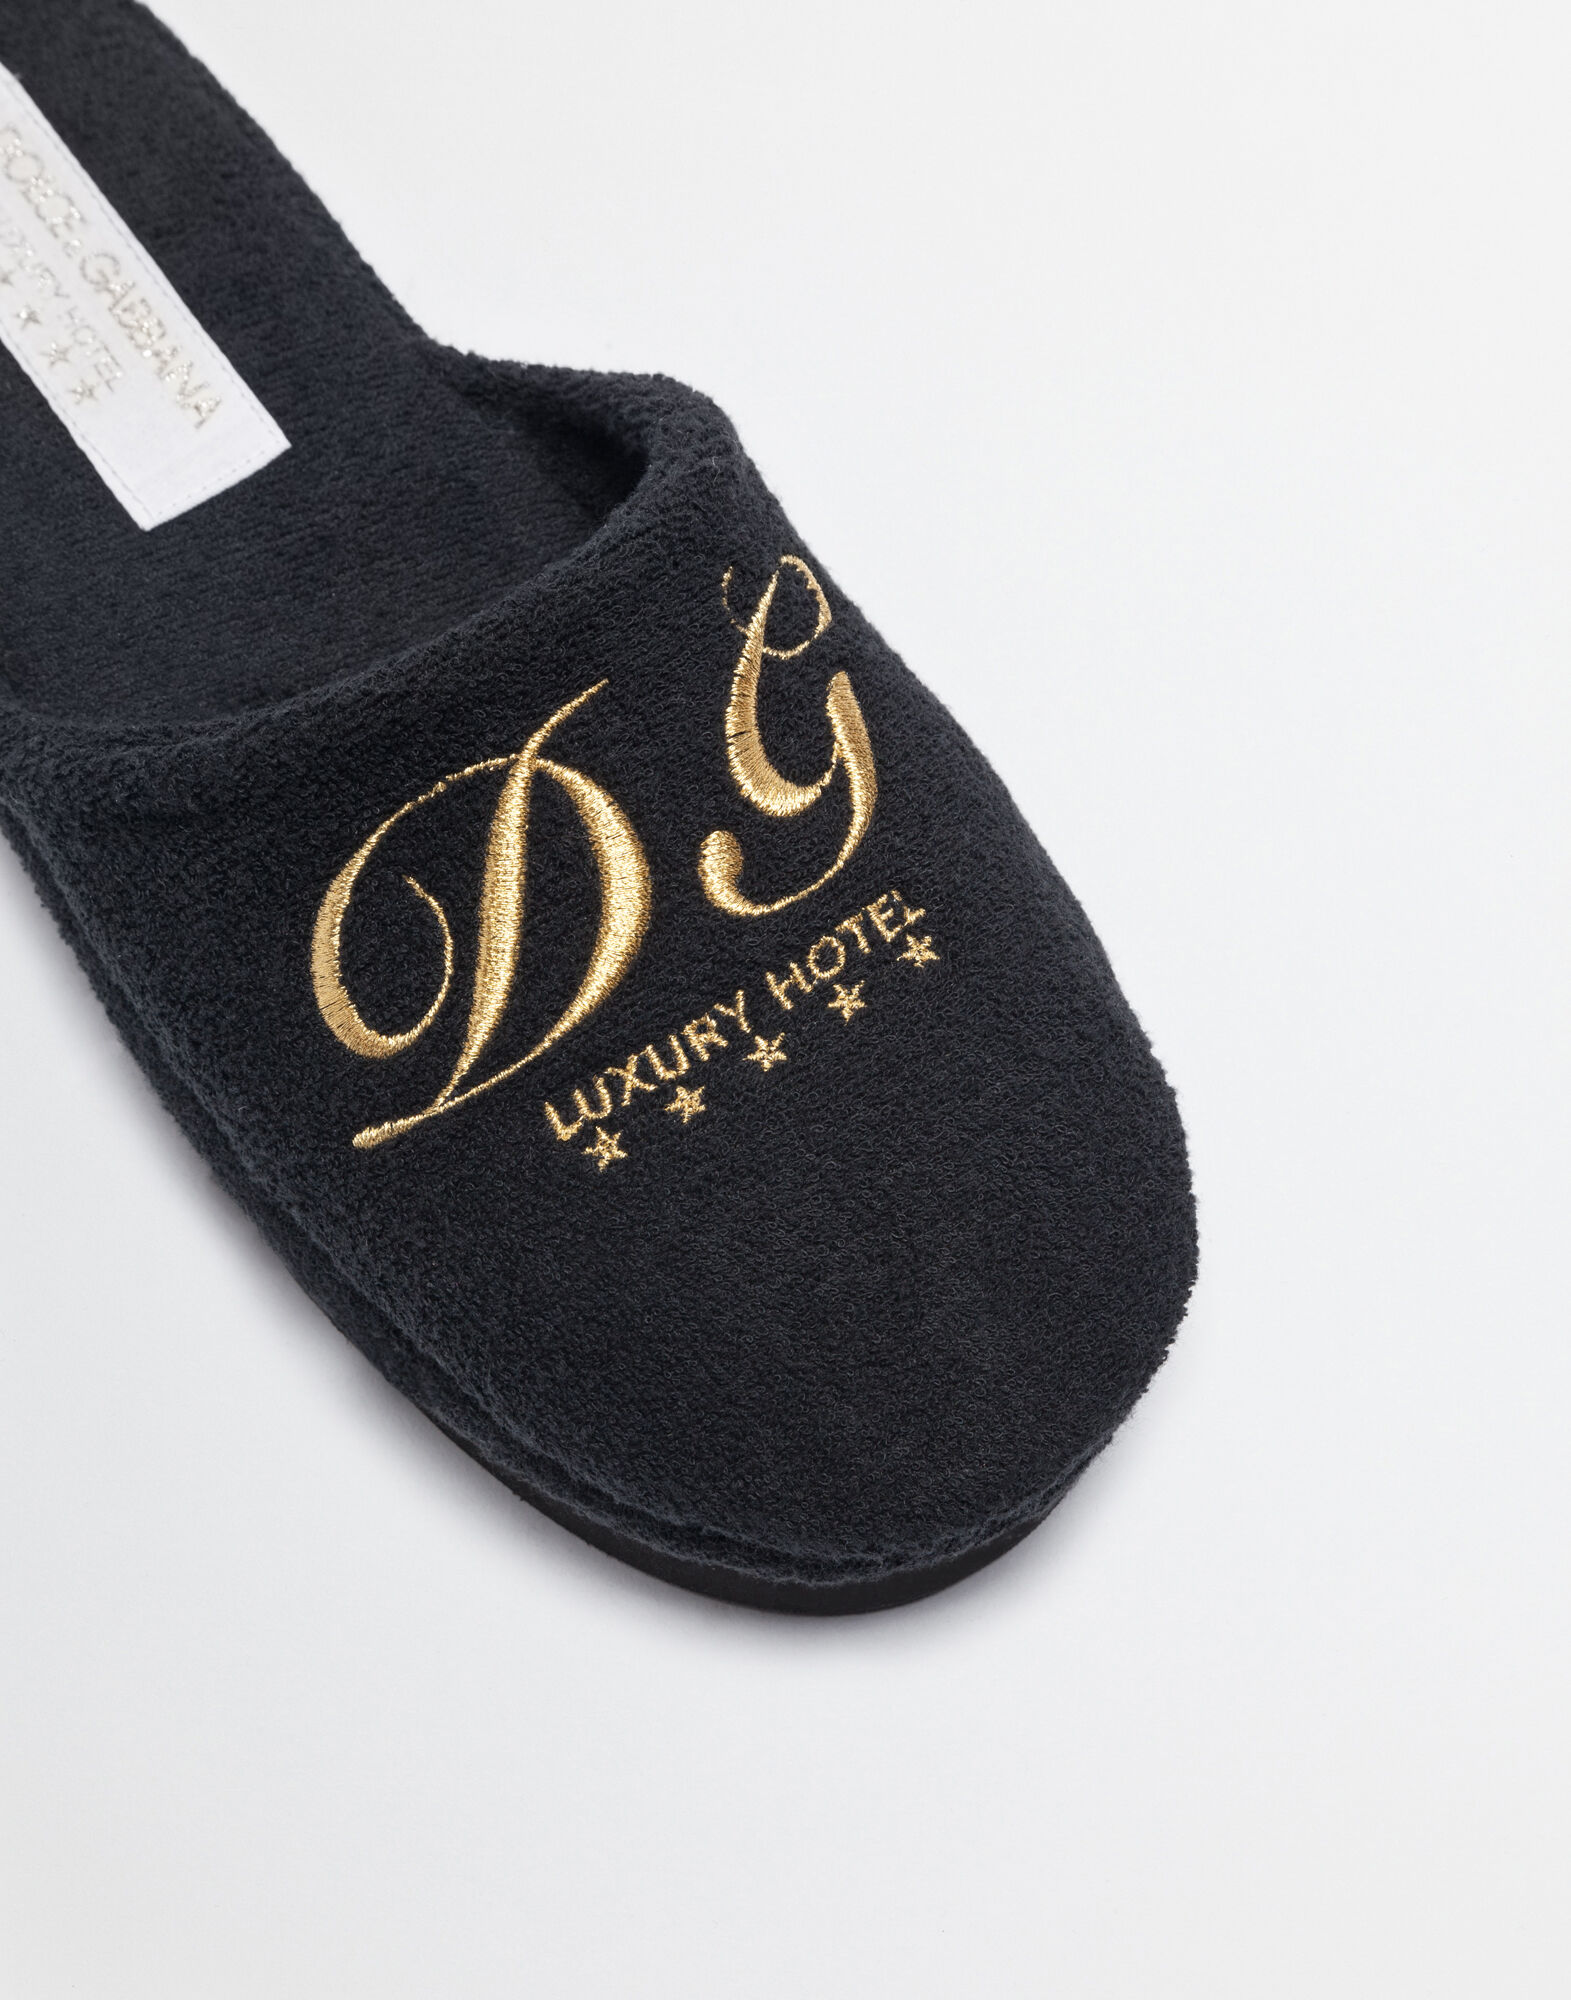 TERRY CLOTH SLIPPERS WITH EMBROIDERY